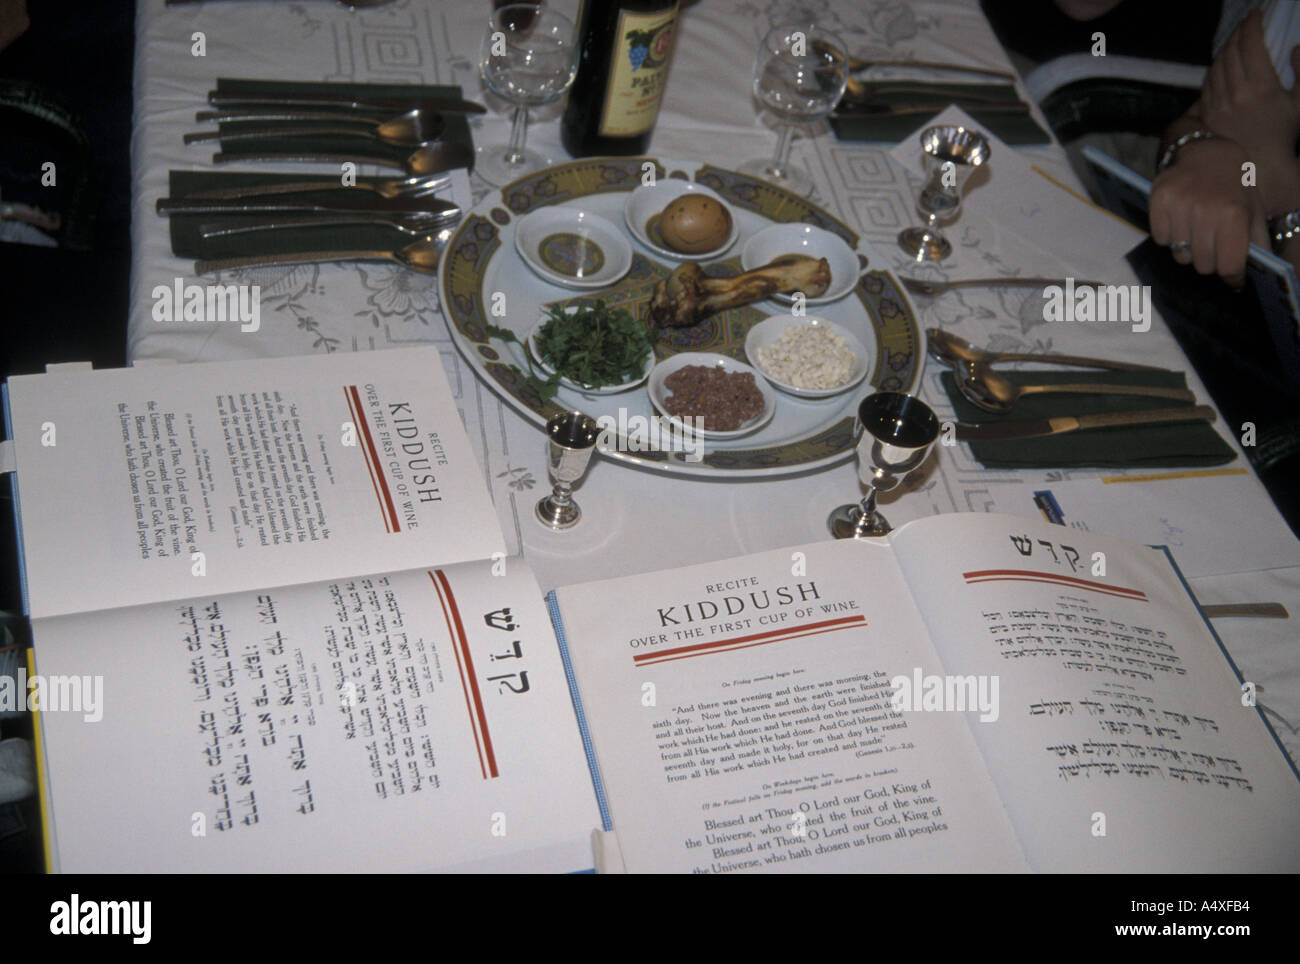 JUDAISM Passover table with seder plate and Haggadah - Stock Image